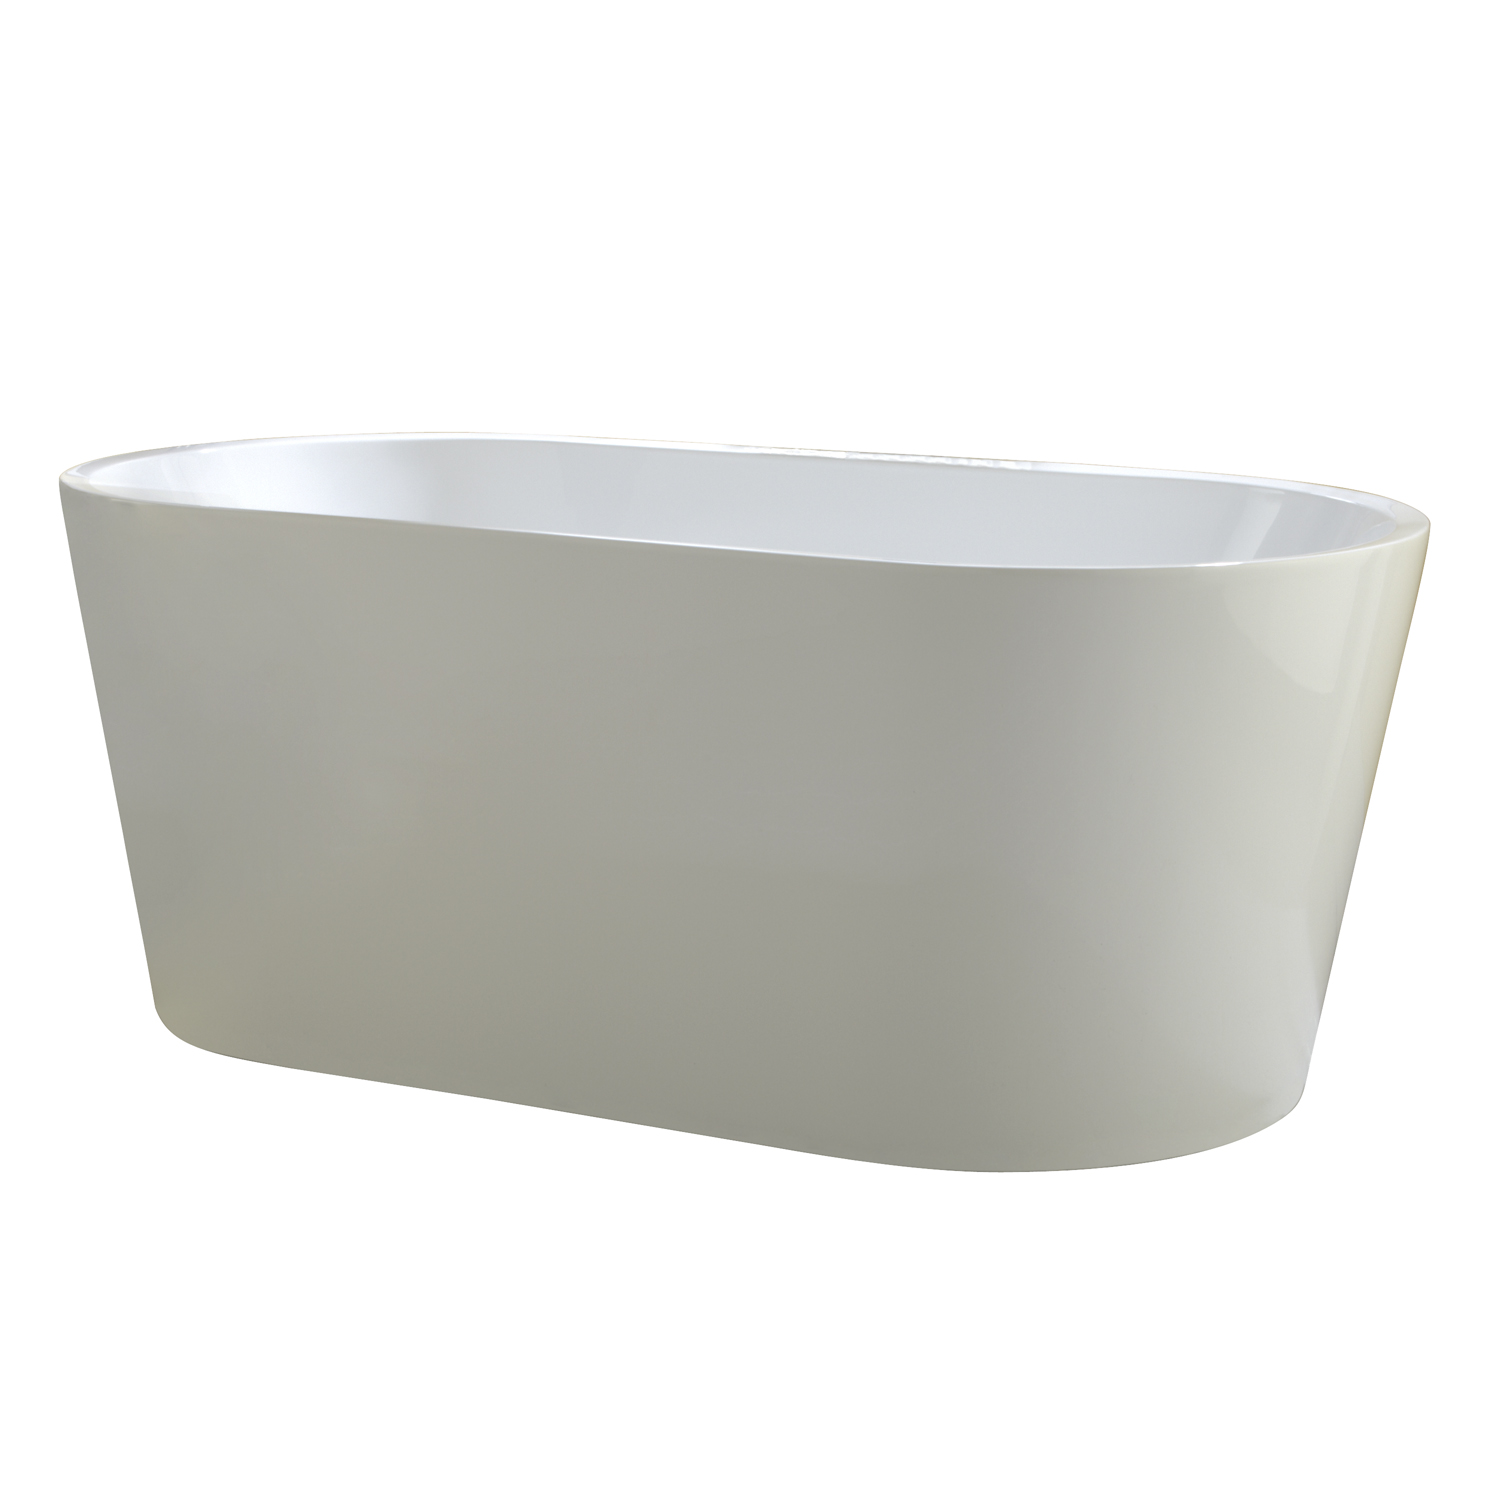 Astounding barclay sinks single bowl double bowl stainless kitchen sink barclay sinks for kitchen ideas